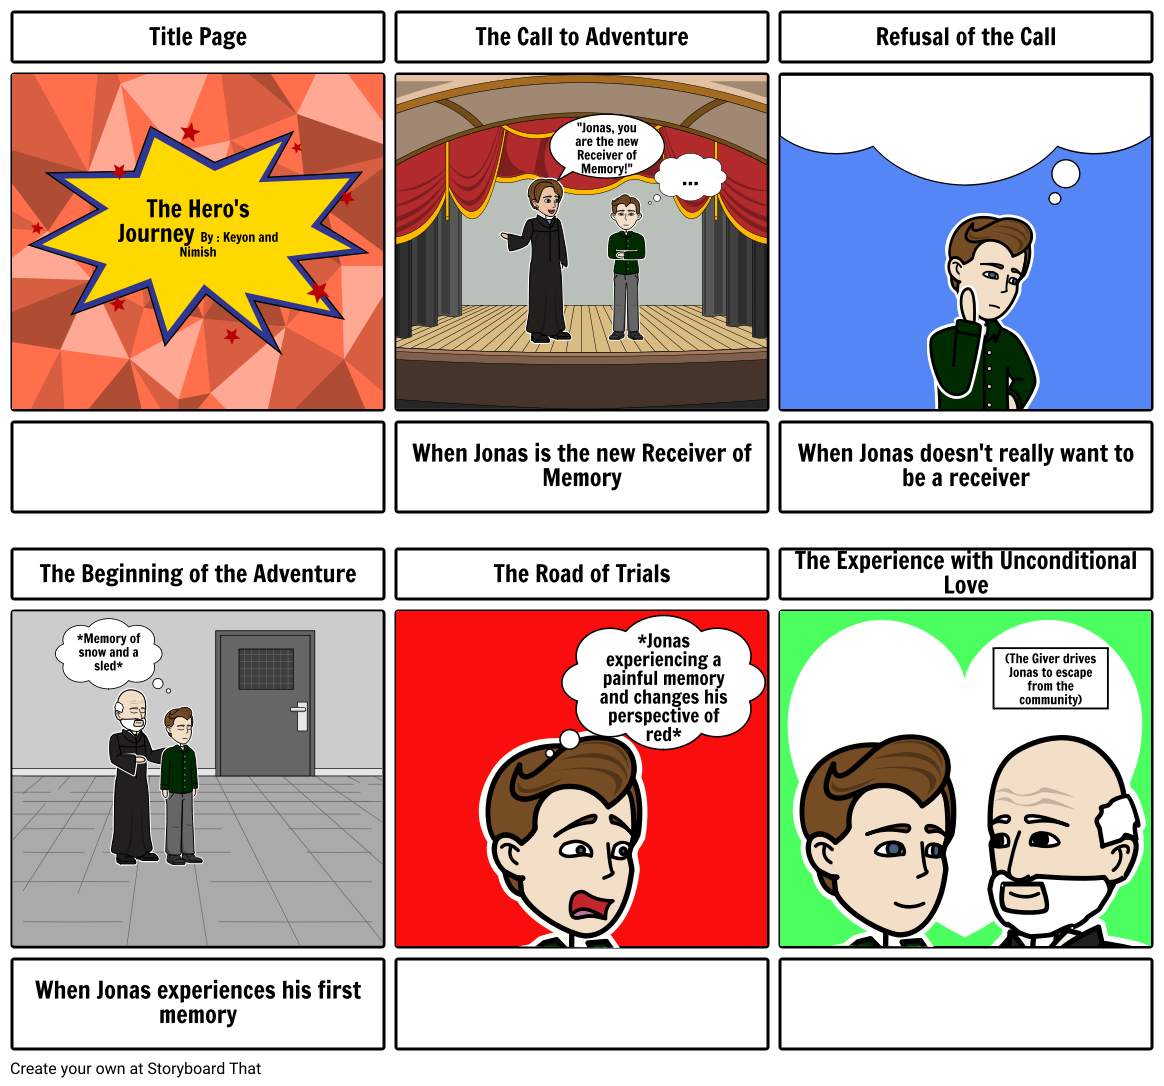 The Hero's Journey (1-5) By: Keyon and Nimish